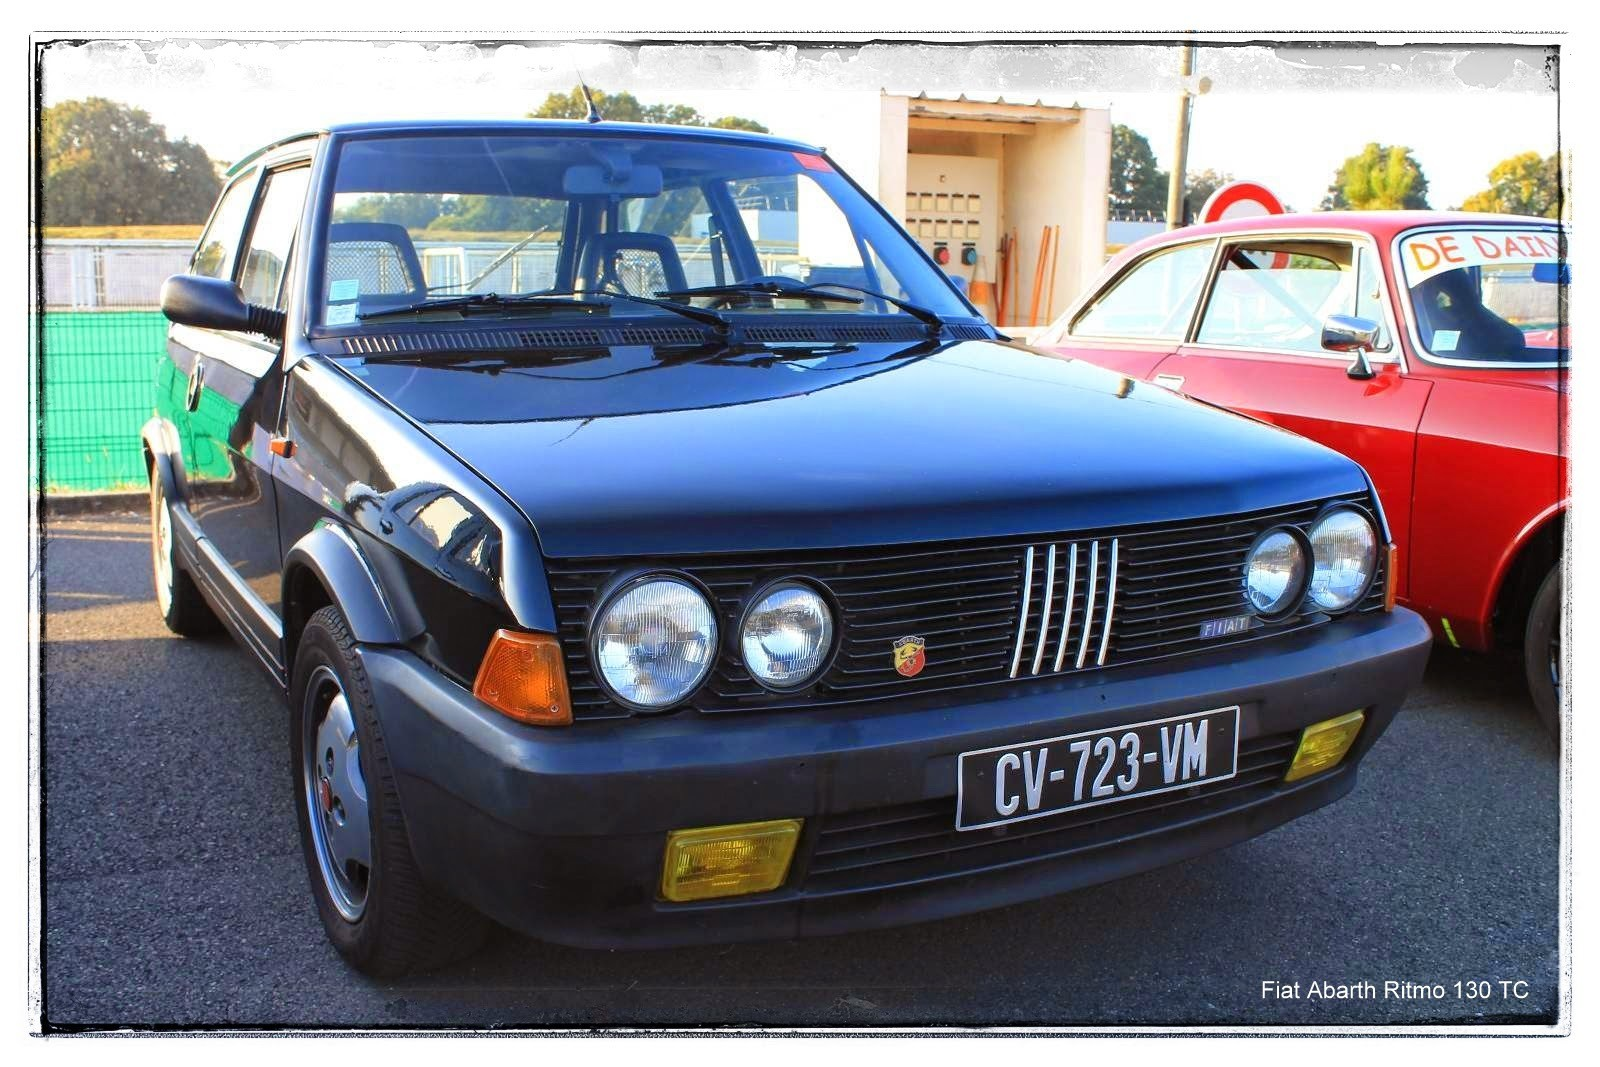 italian meeting - Fiat Abarth Ritmo 130 TC